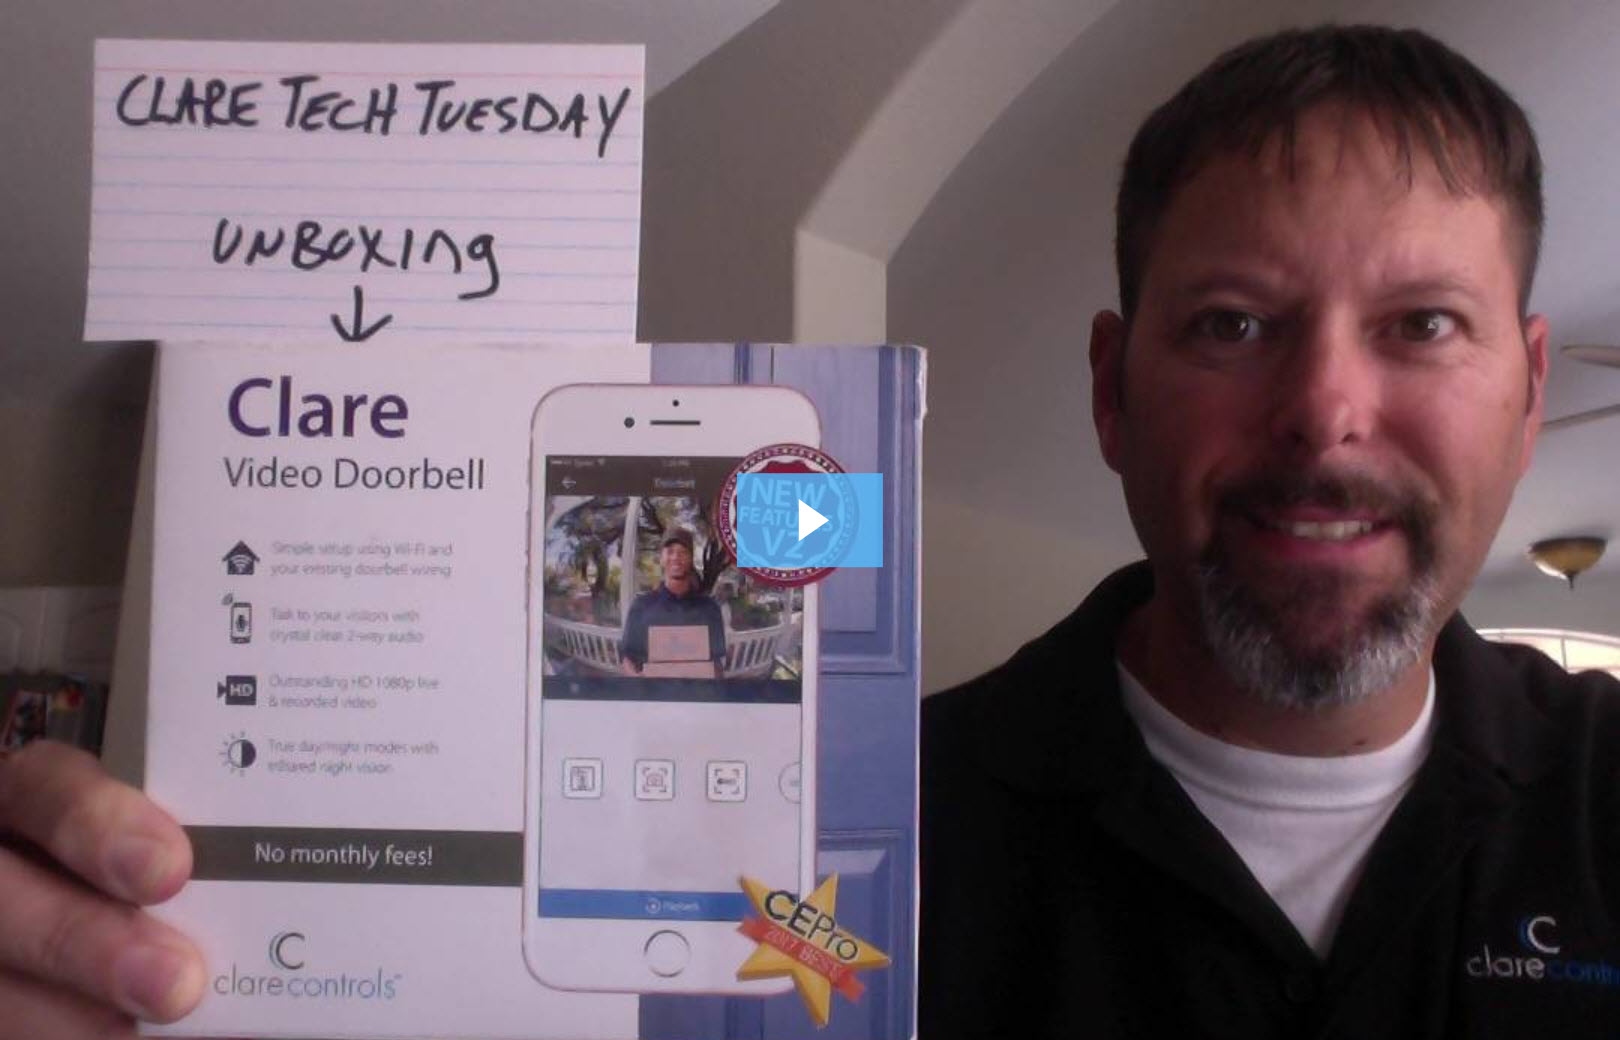 Clare Tech Tuesday: Clare Video Doorbell Unboxing